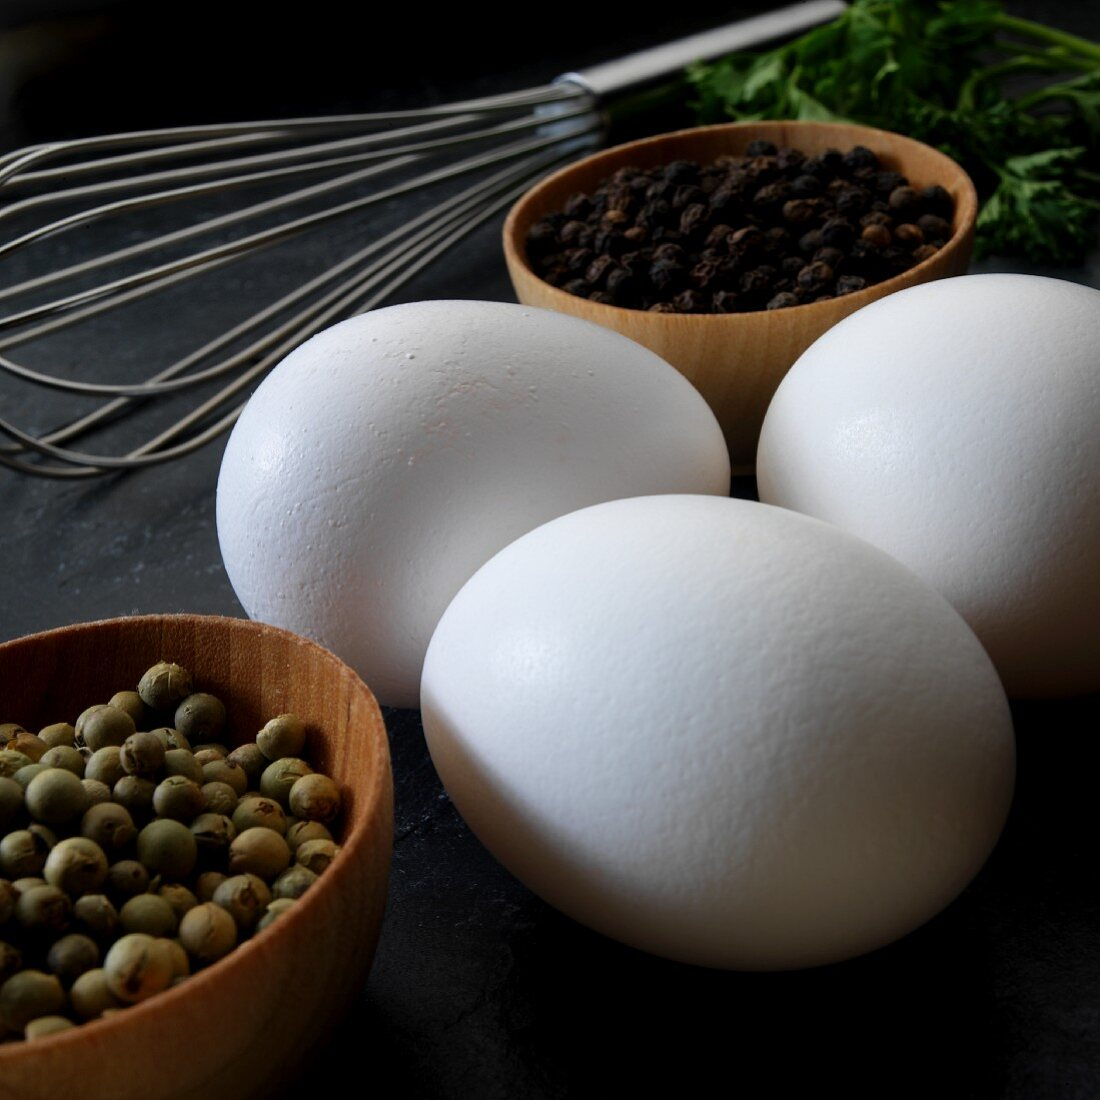 An arrangement of eggs, peppercorns and a whisk (close-up)